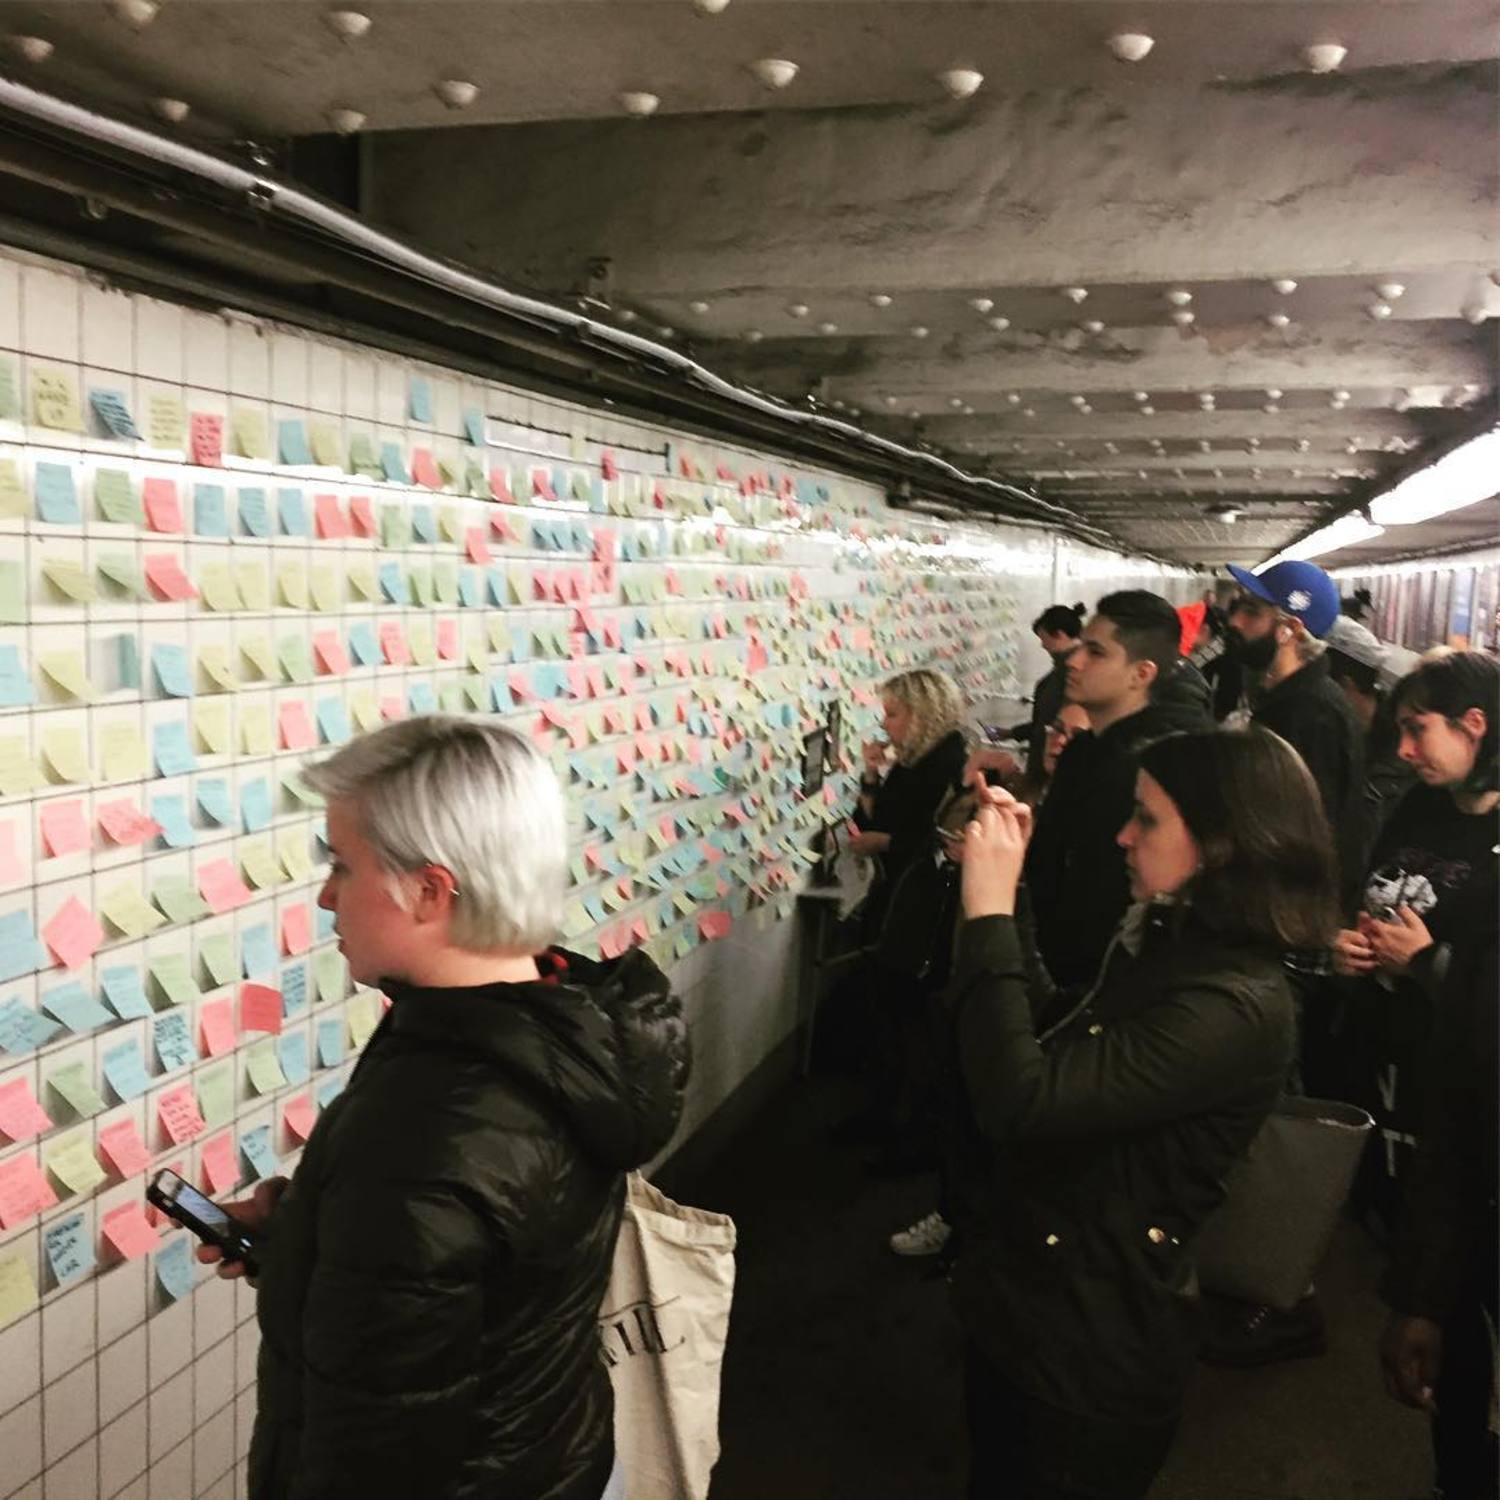 What an amazing day. 1,500 post it's, thousands of people. #subwaytherapy #expressyourself #humanity #subway #nyc #newyork